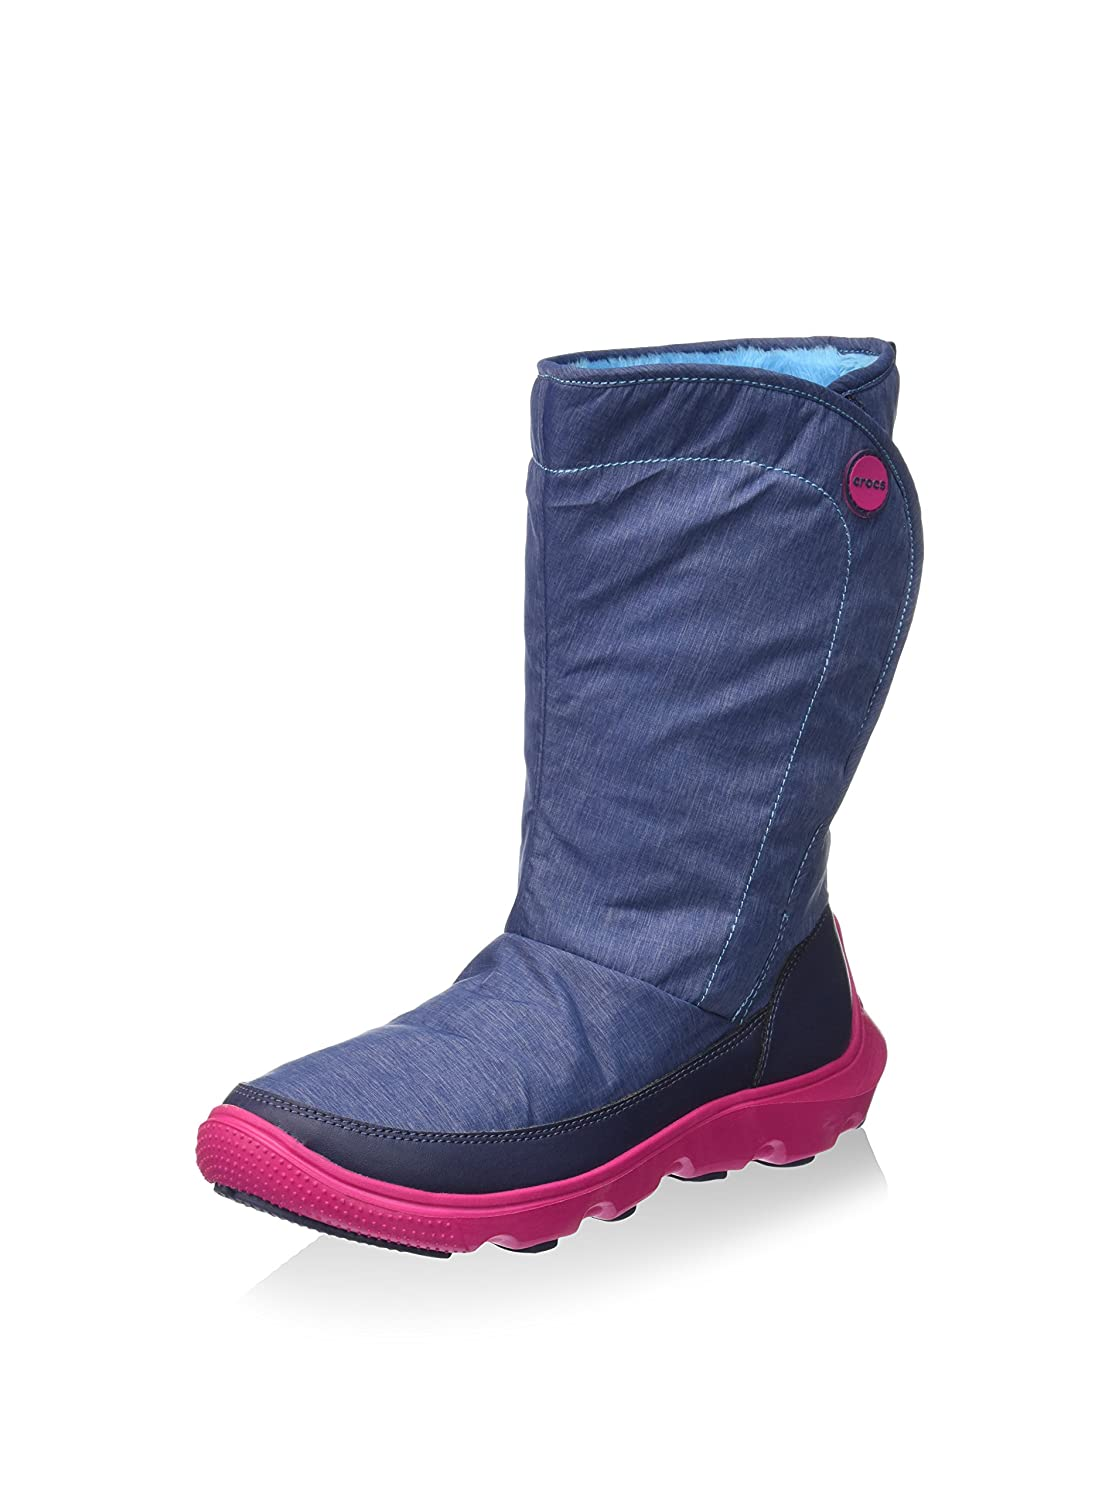 Crocs Duet Busy Day Winter Boot W - Botas de sintético mujer Blu (Nautical Navy/Candy Pink)